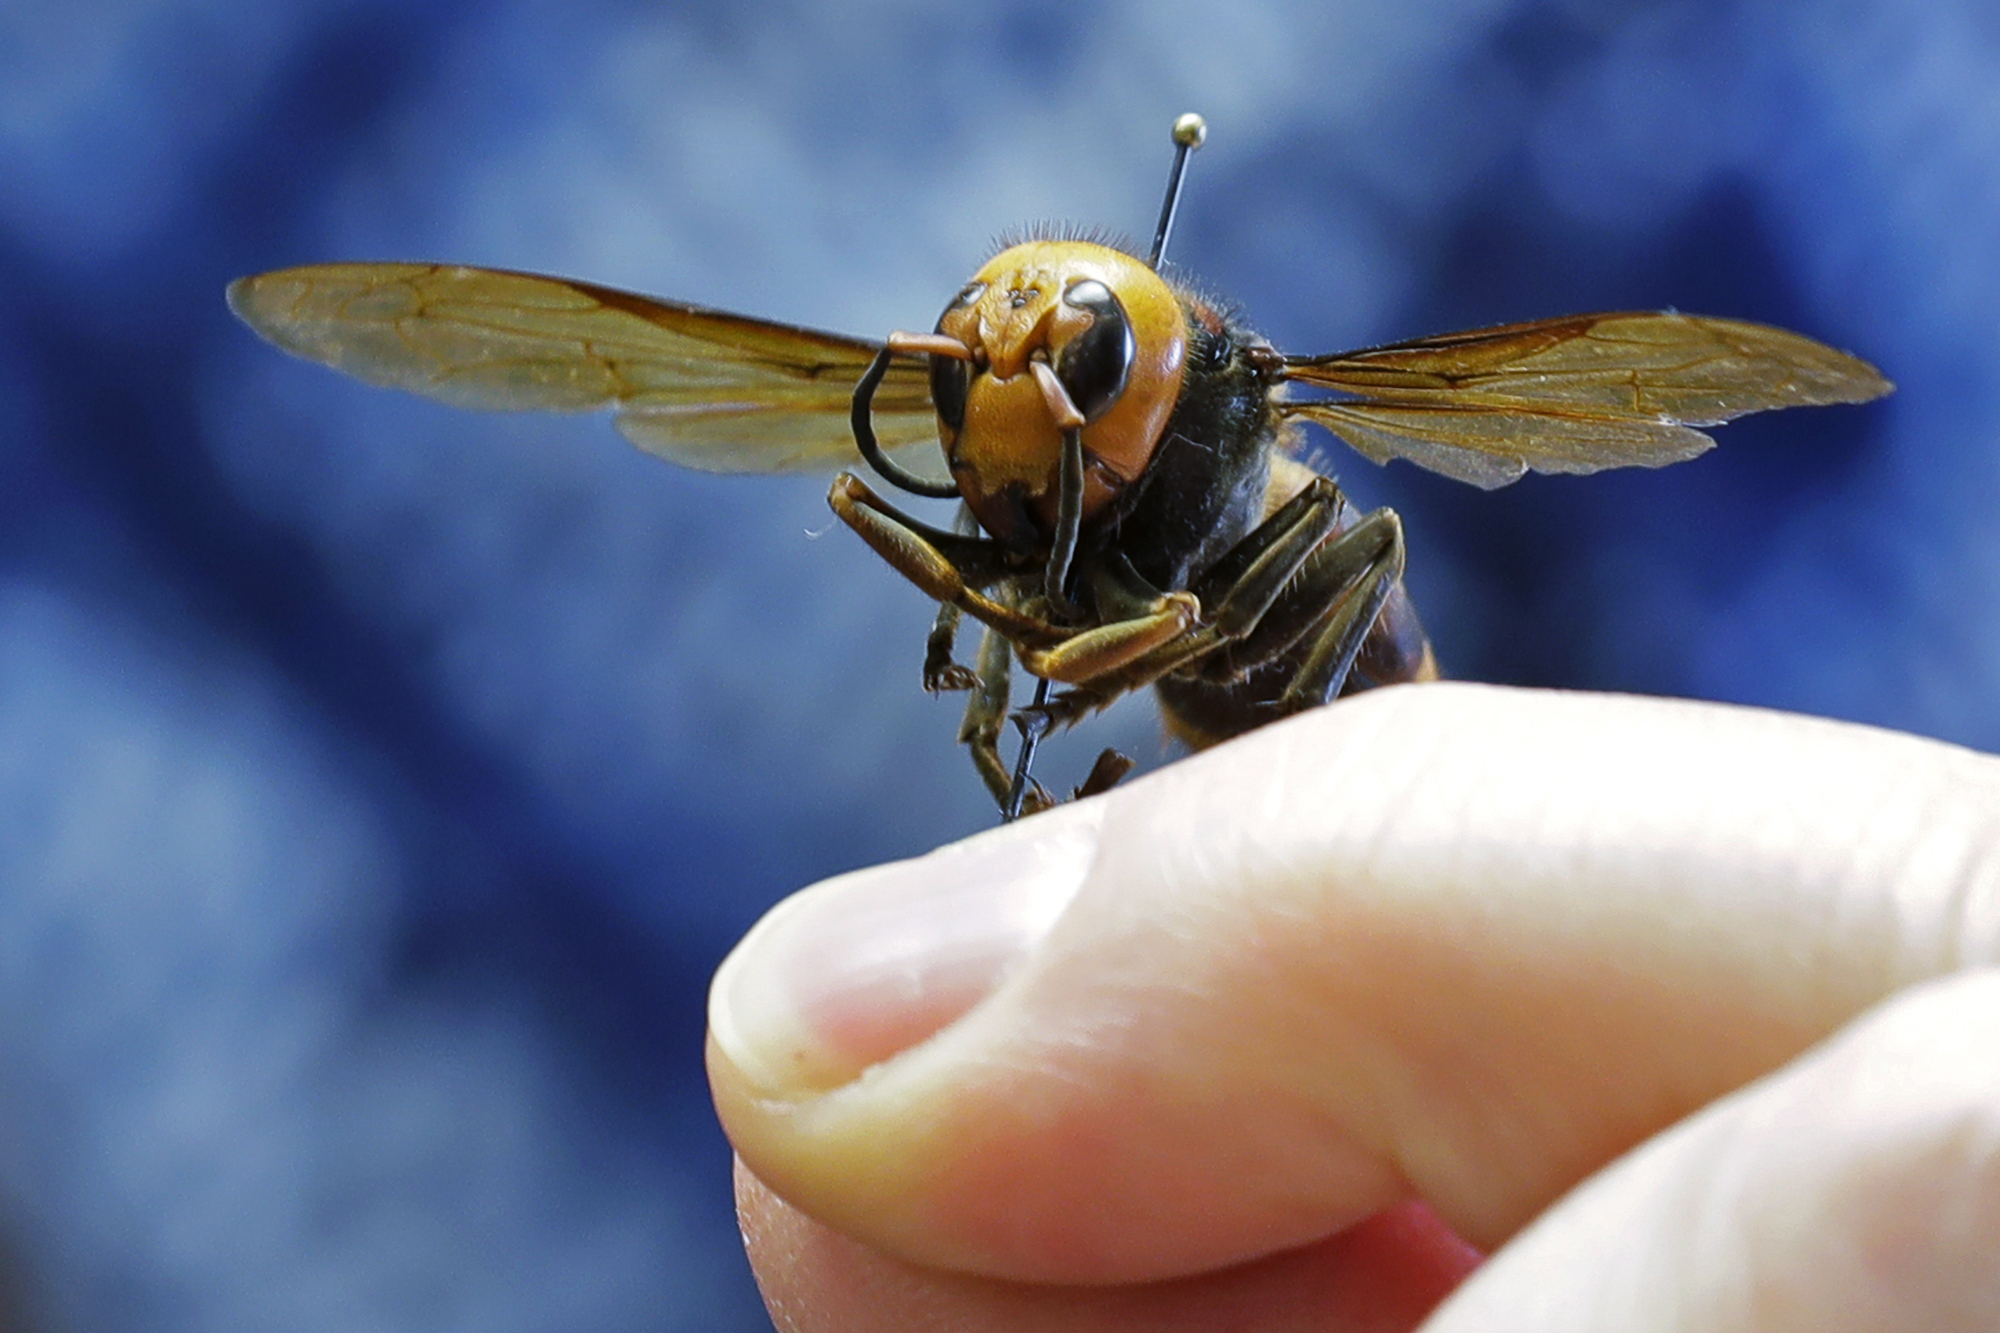 Asian giant hornet perched on human finger